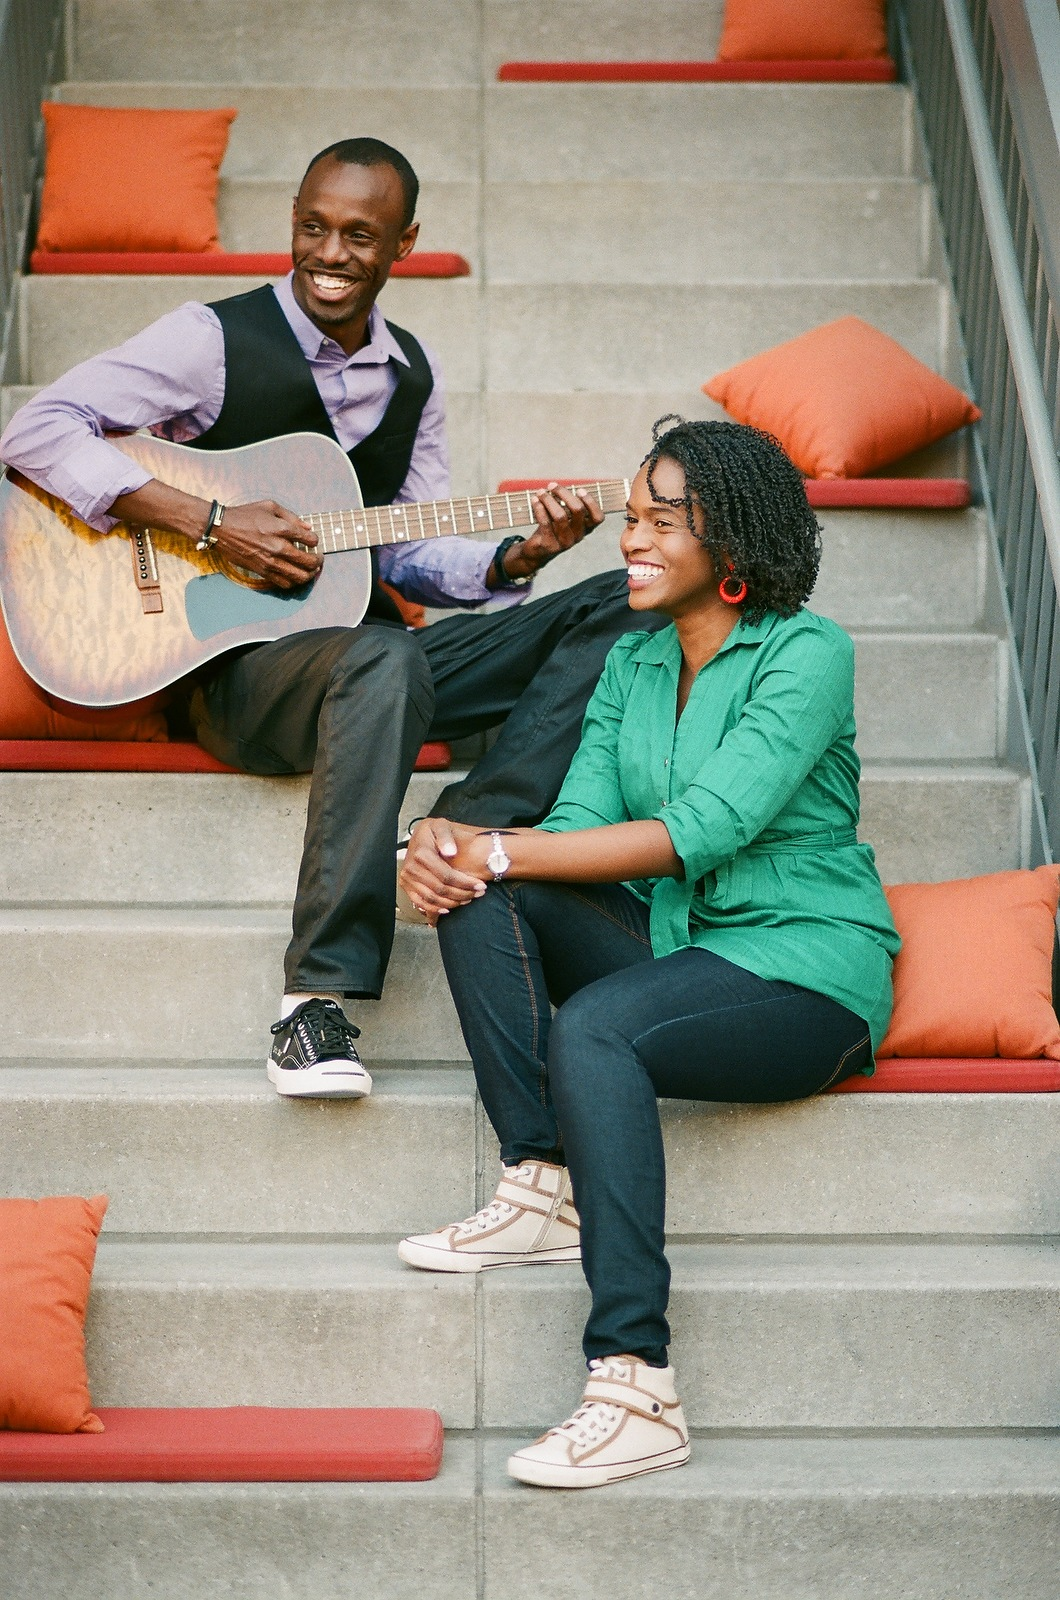 engagement portrait of couple playing guitar in meatpacking district